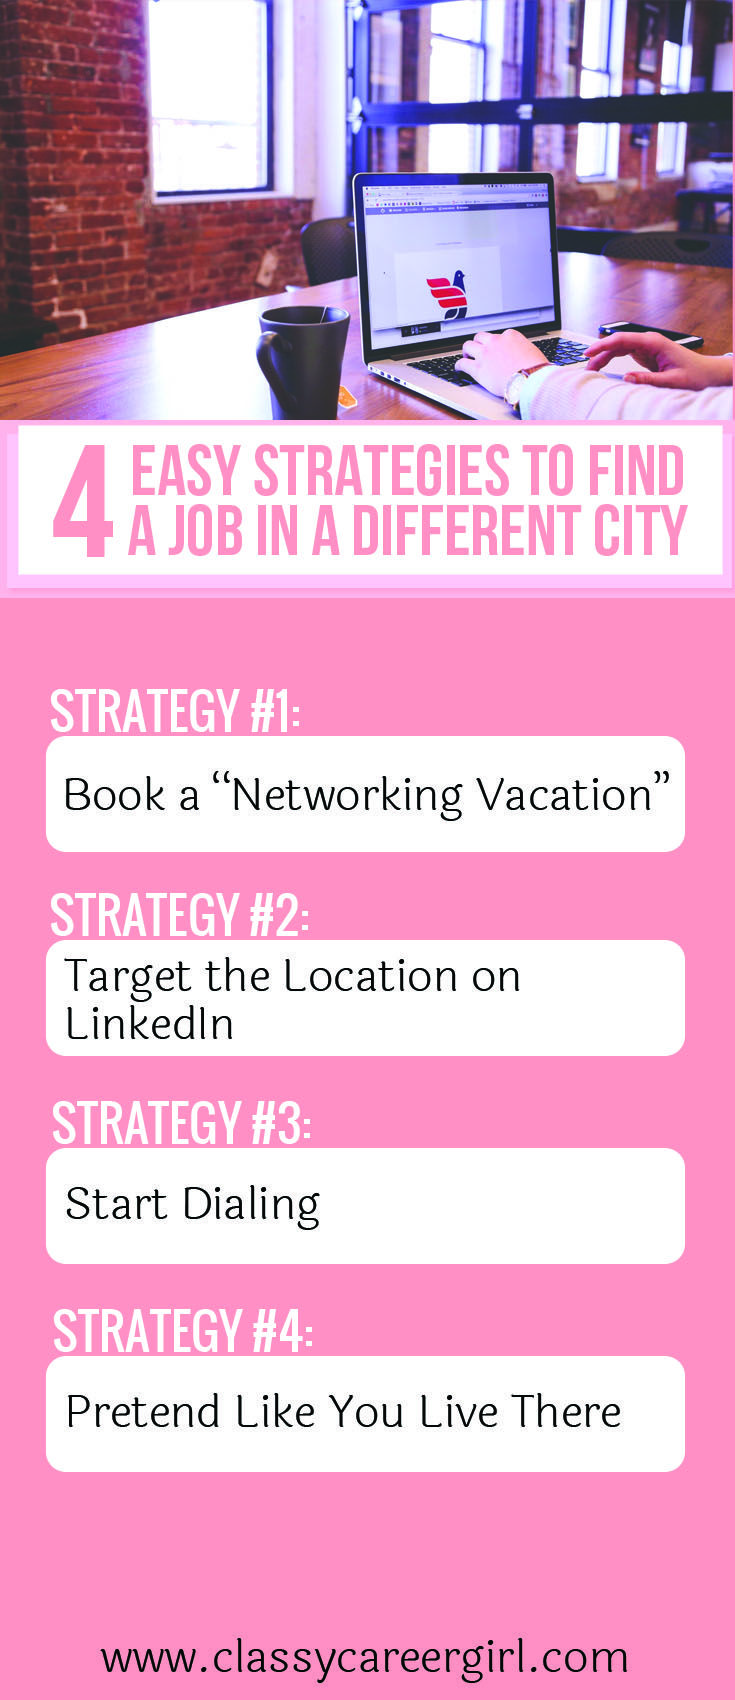 images about networking advice and tips 4 easy strategies to a job in a different city when i was younger